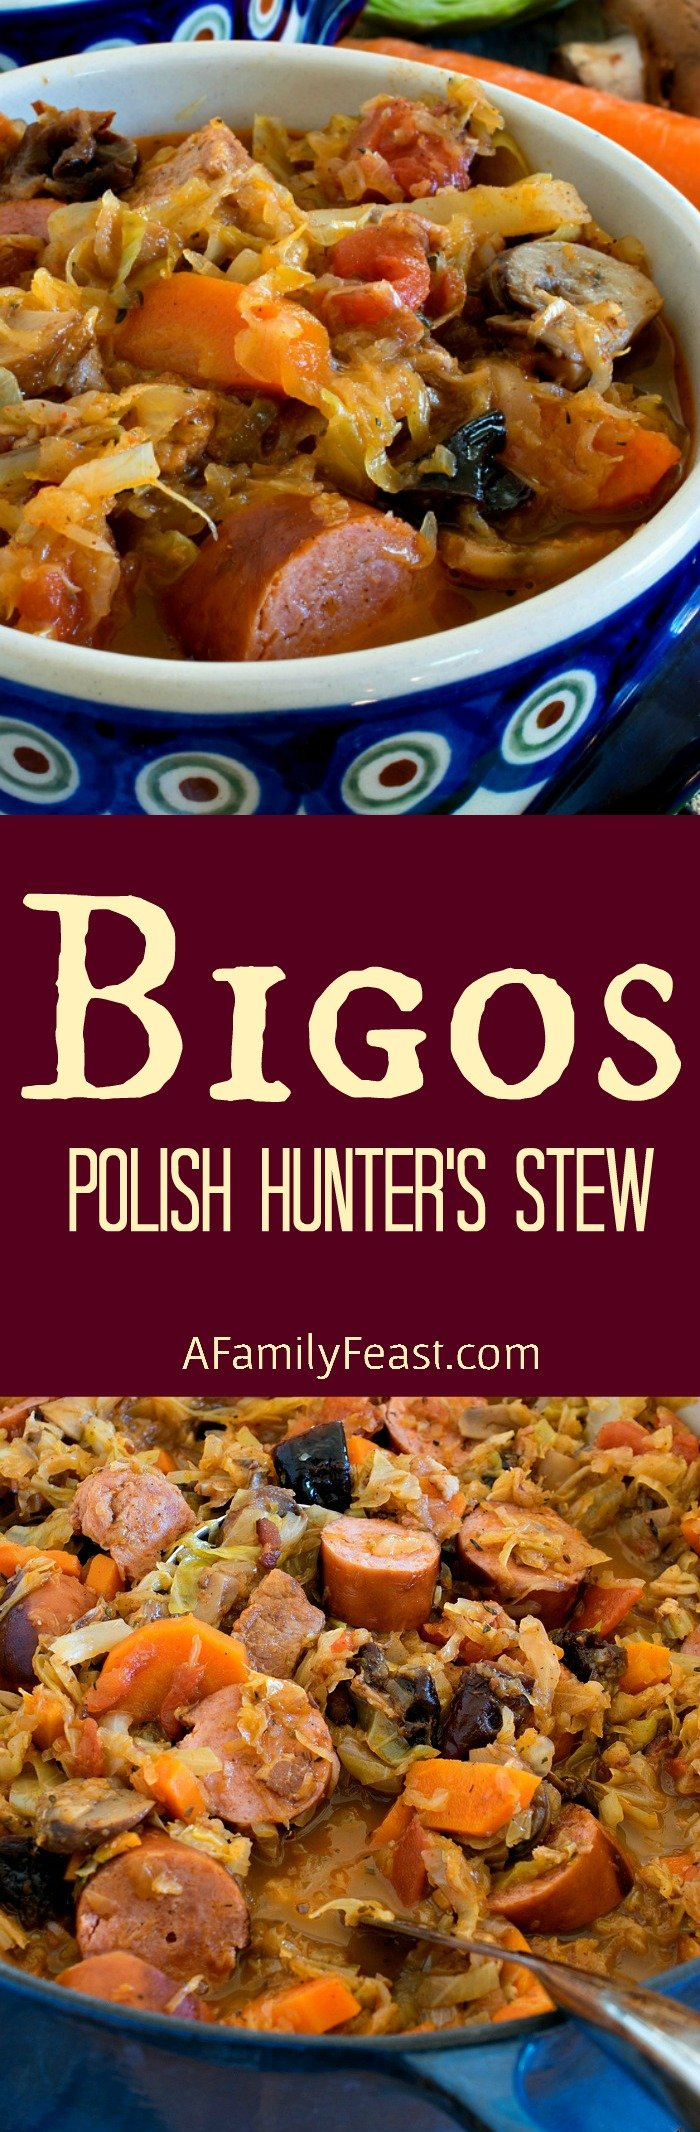 Bigos (also known as Polish Hunter's Stew) is a hearty delicious dish made with meat, cabbage, sauerkraut and vegetables.